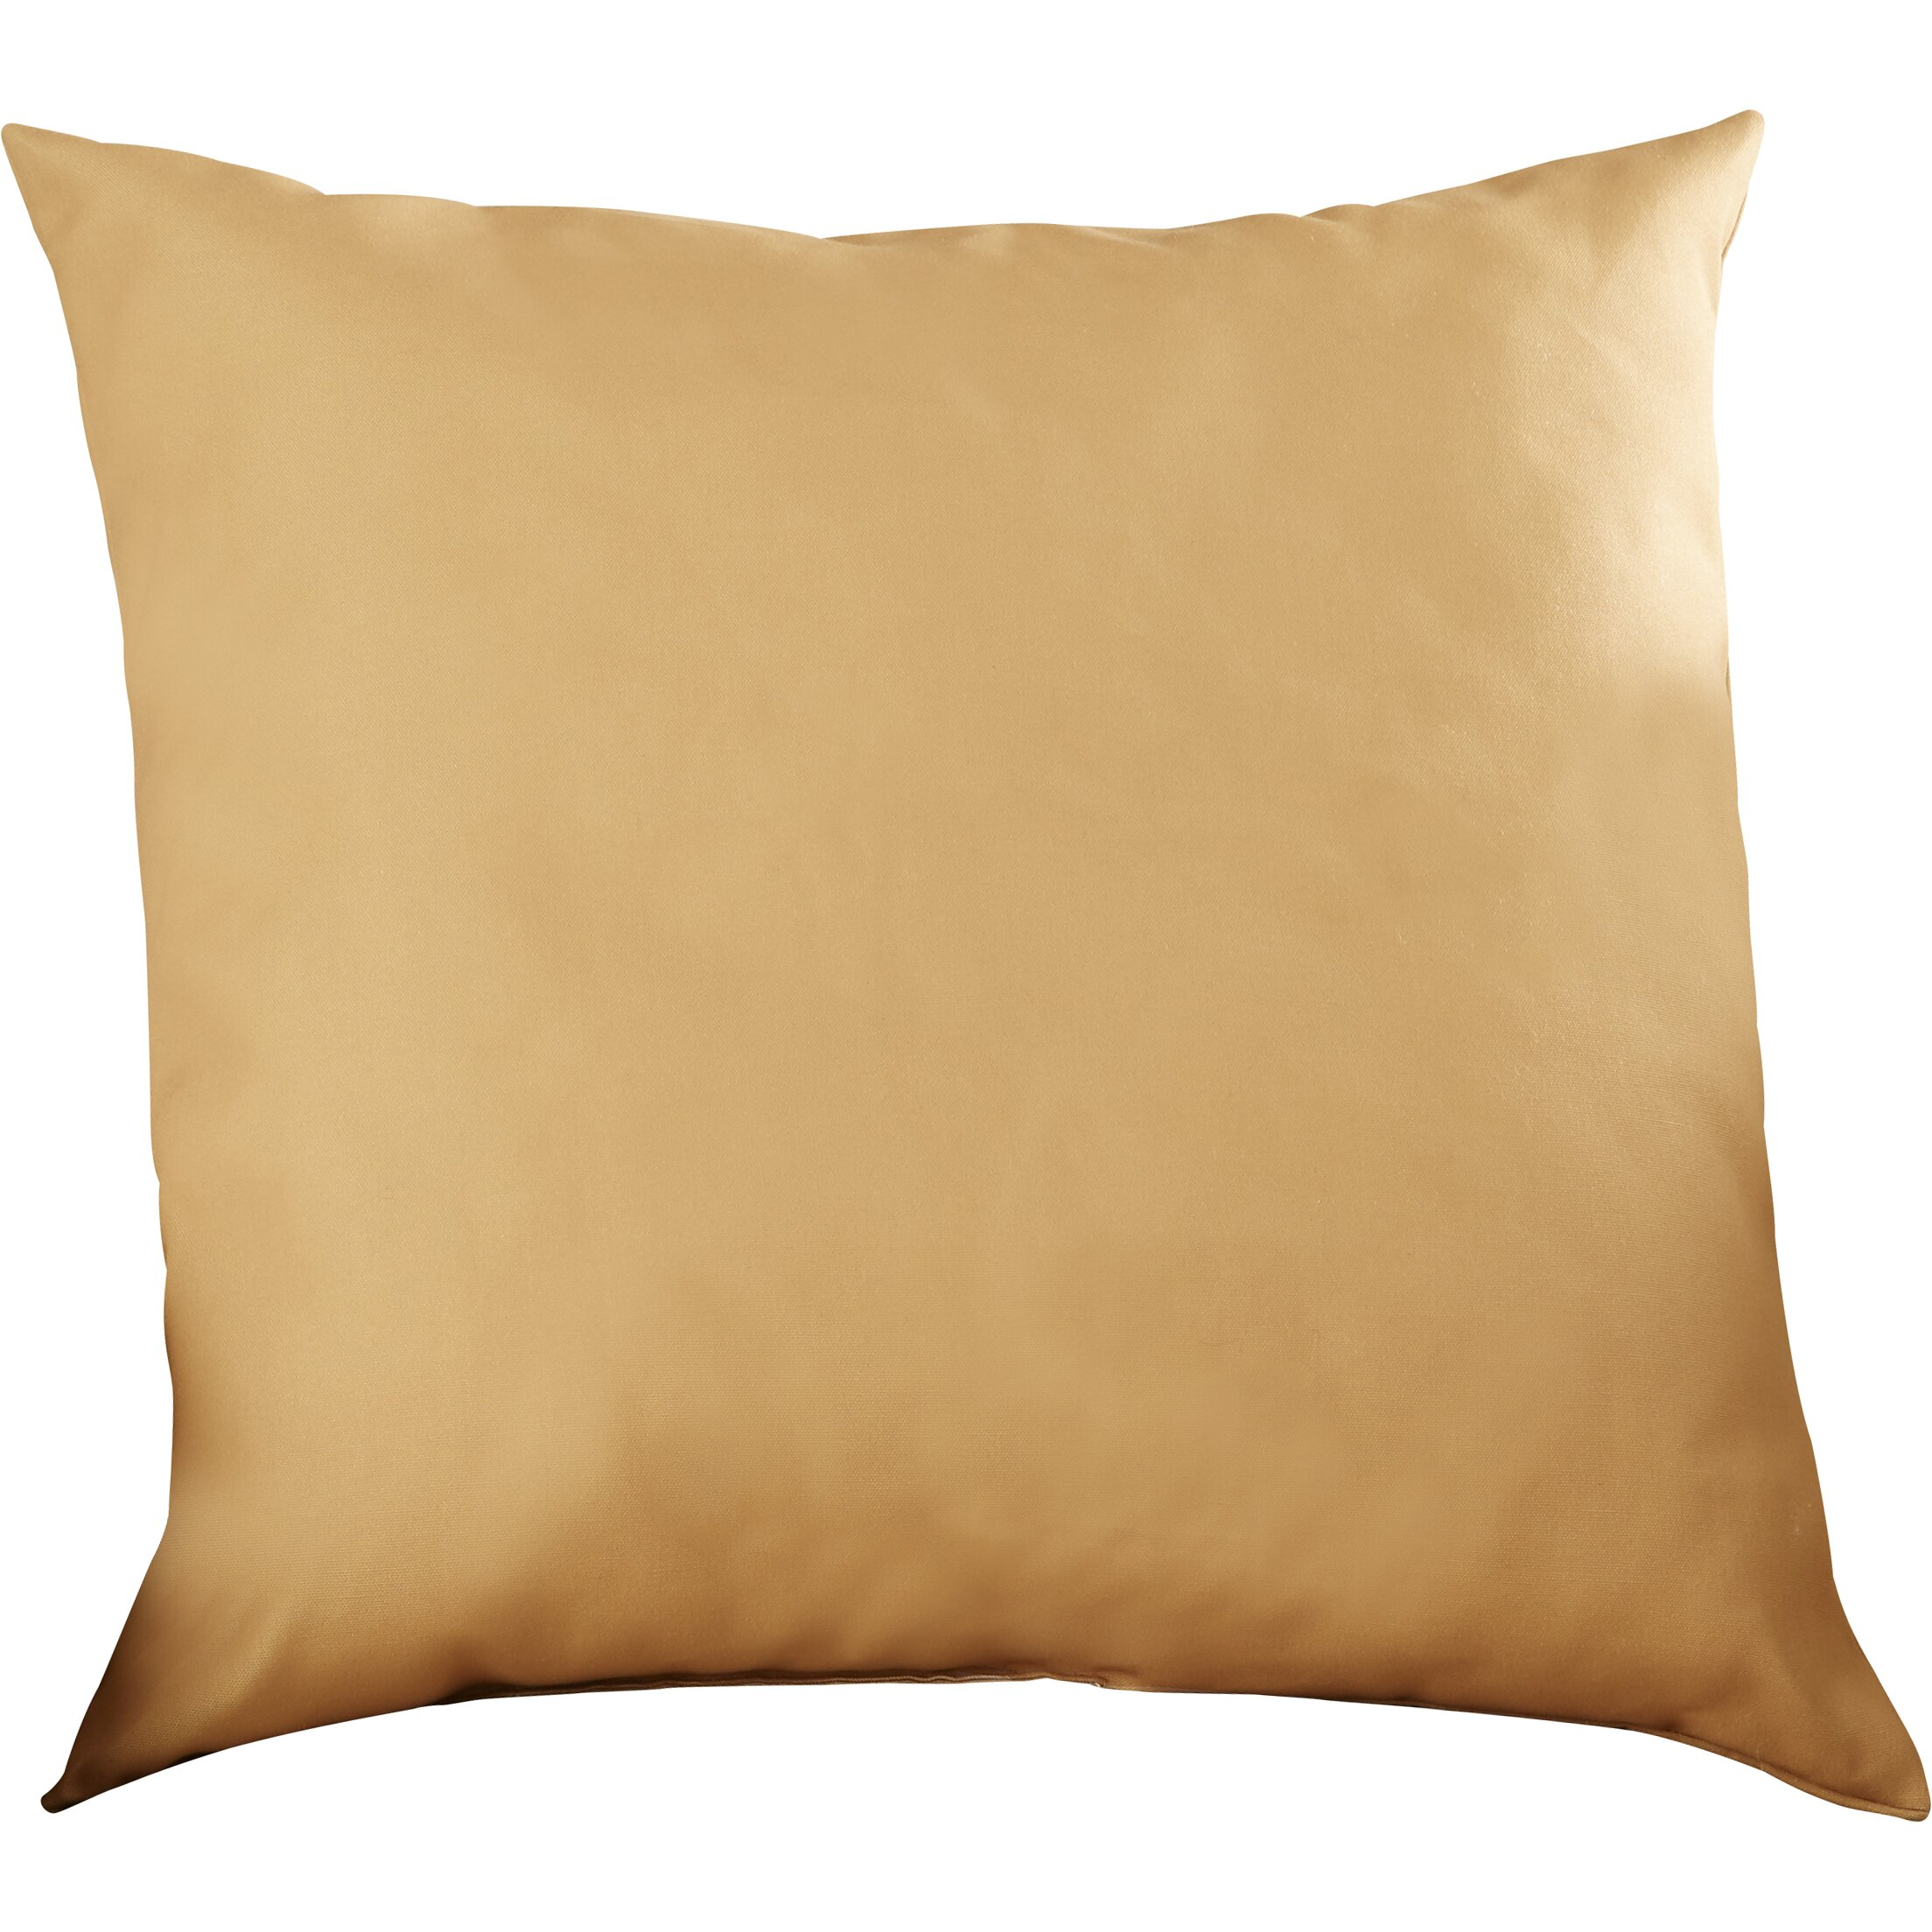 Decorative Pillow Wayfair : Alcott Hill Mallinson Decorative Throw Pillow & Reviews Wayfair.ca